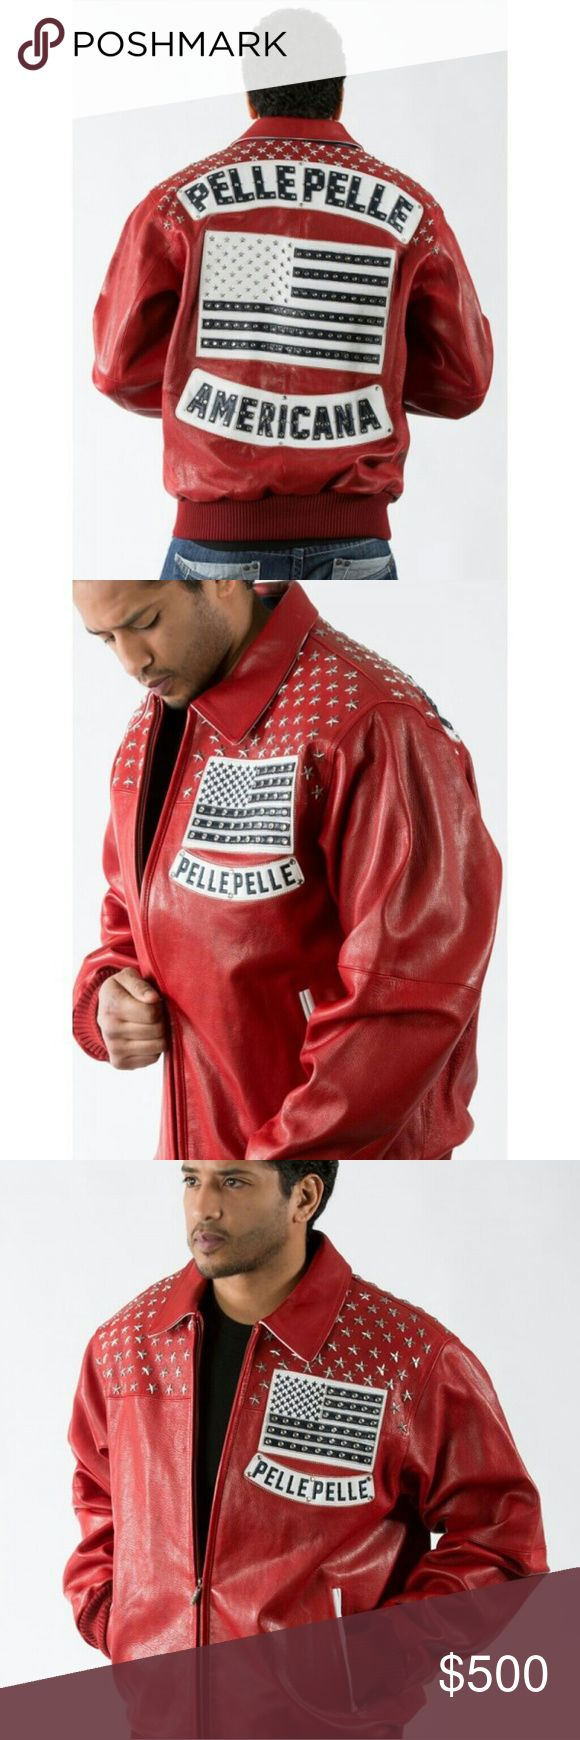 NEW PELLE PELLE LEATHER JACKET Brand new red pelle pelle leather jacket. Comes with tags and protective carrying case. Size 48 (xl). Free shipping Pelle Pelle Jackets & Coats Bomber & Varsity